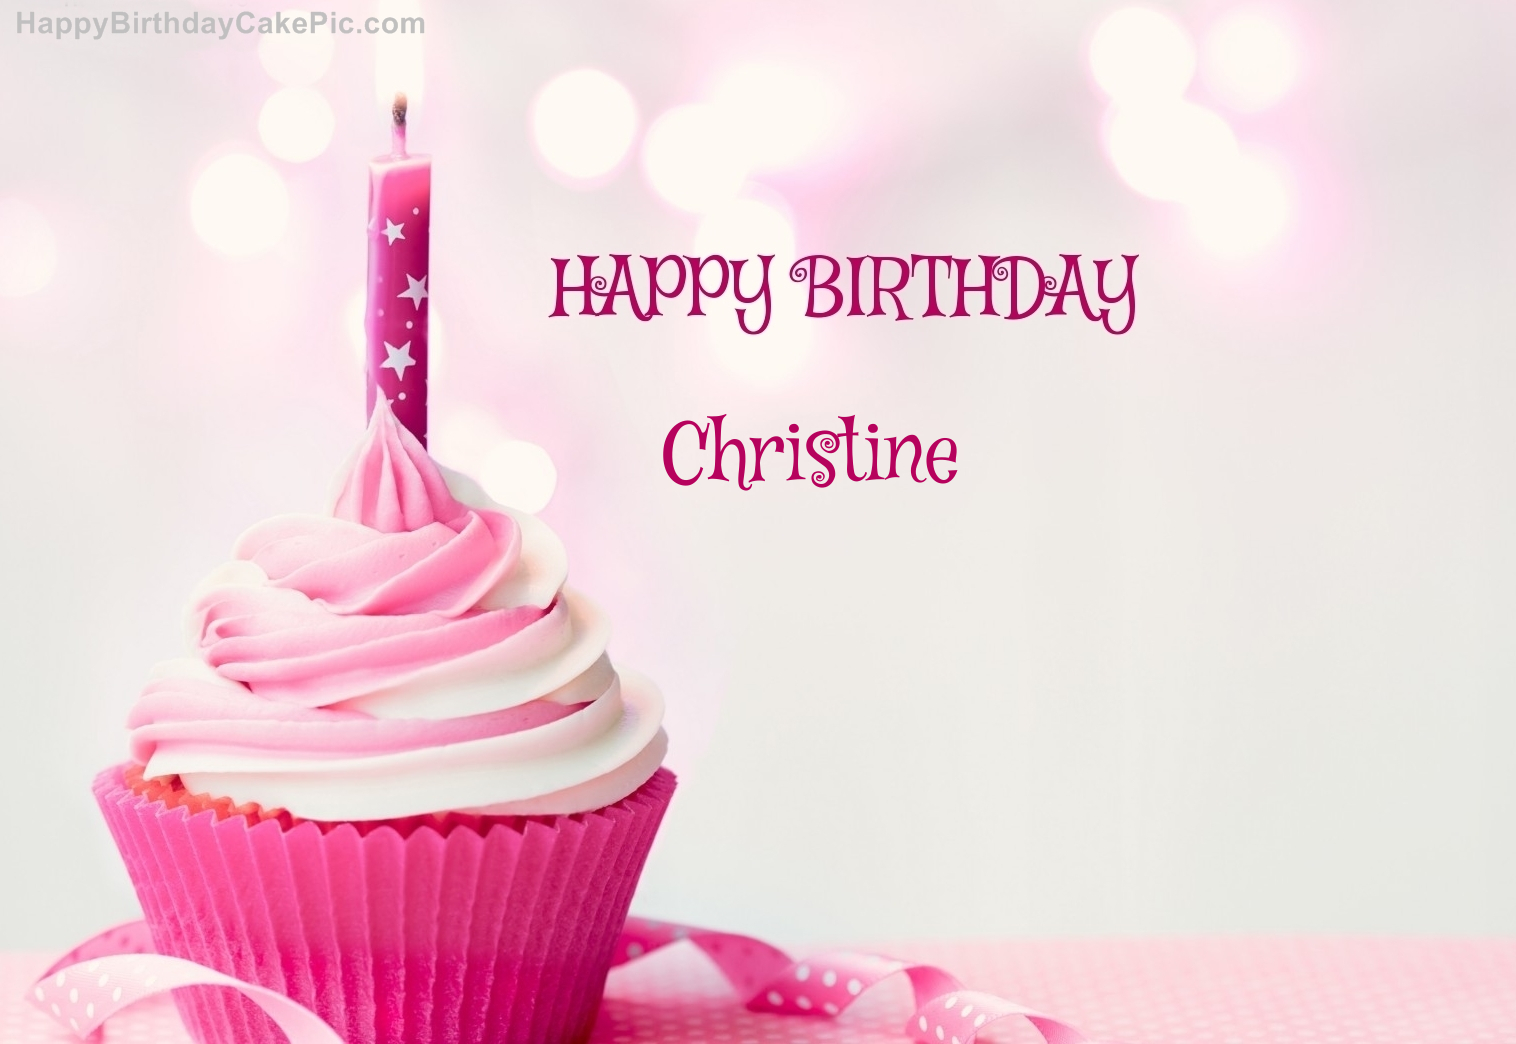 Happy Birthday Cupcake Candle Pink Cake For Christine